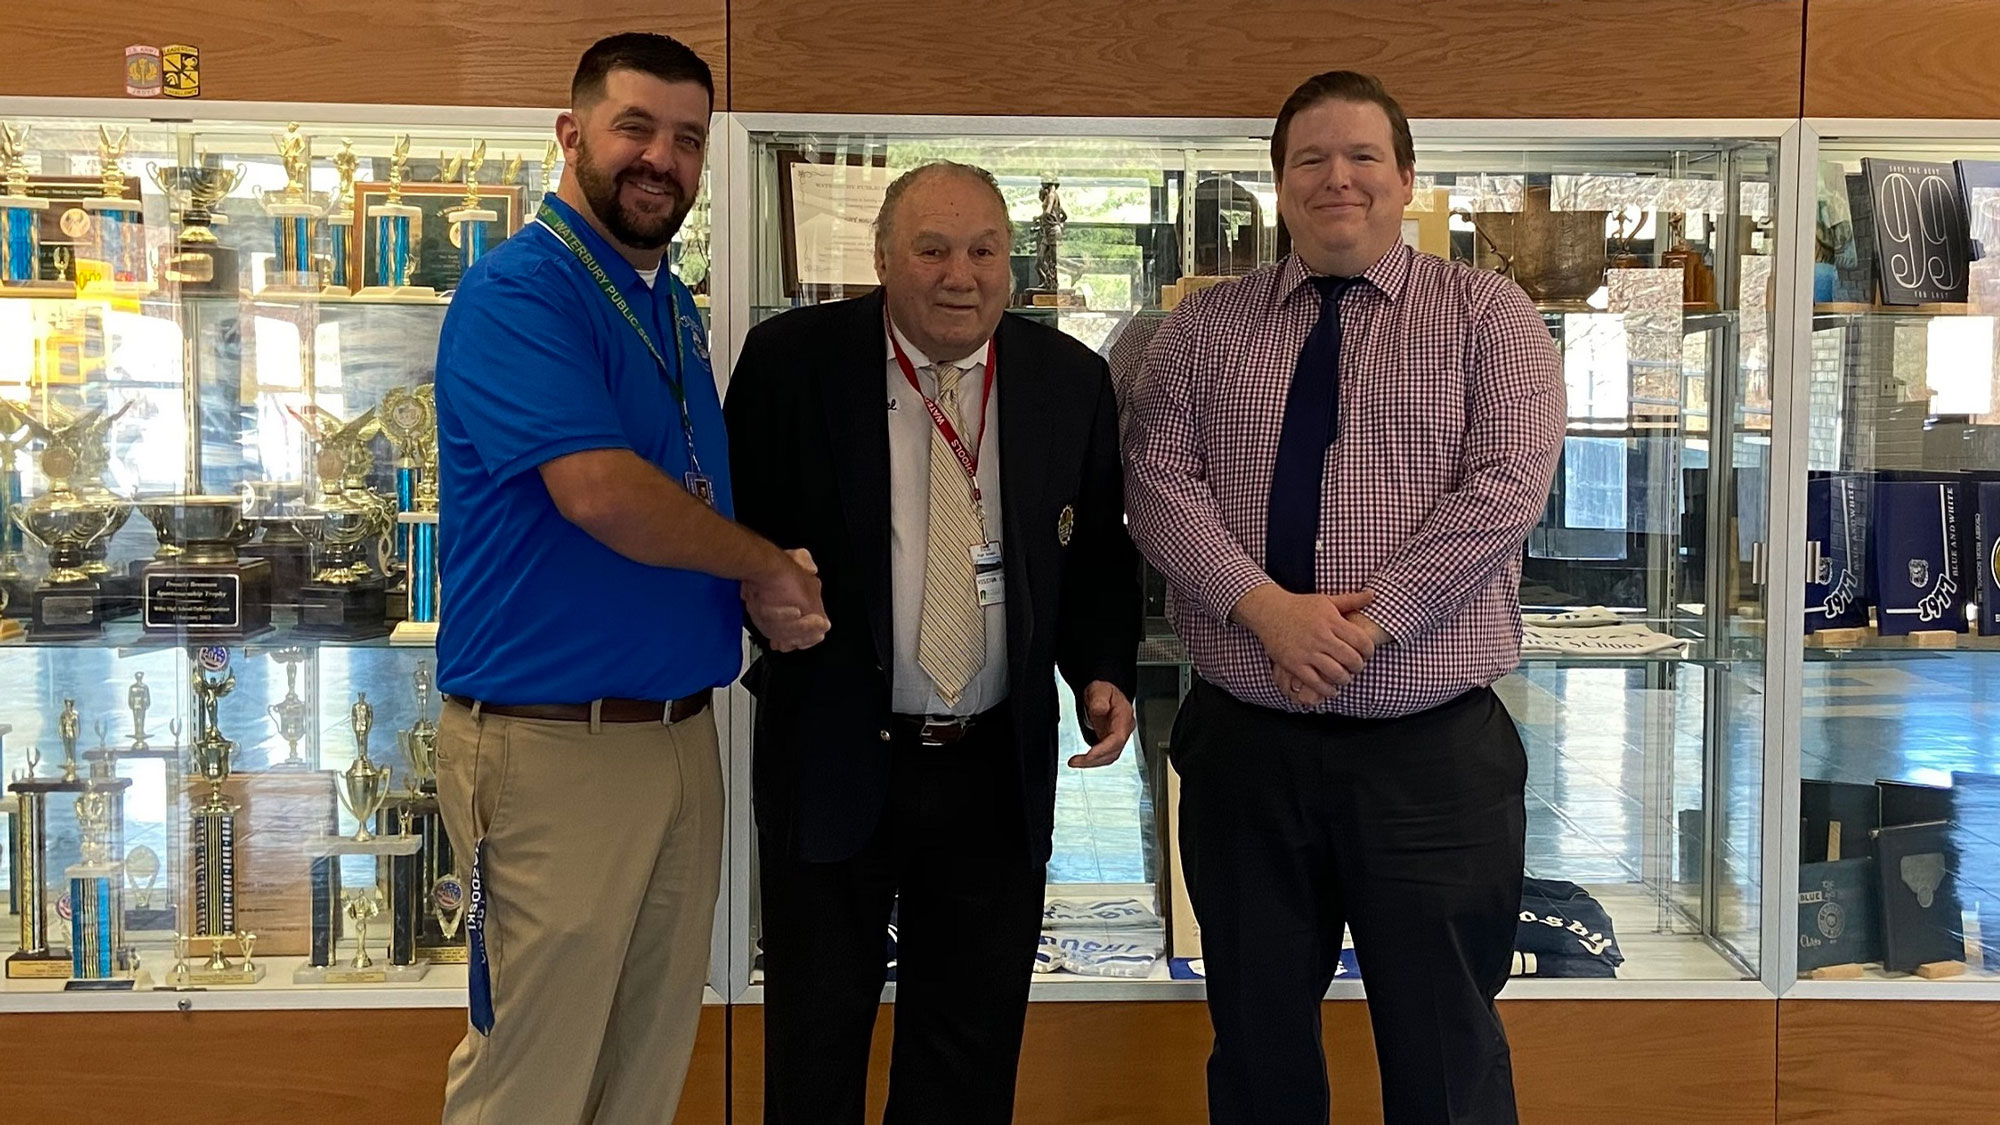 IMTI Offers Training Certification Programs at Waterbury High Schools as College Education Option